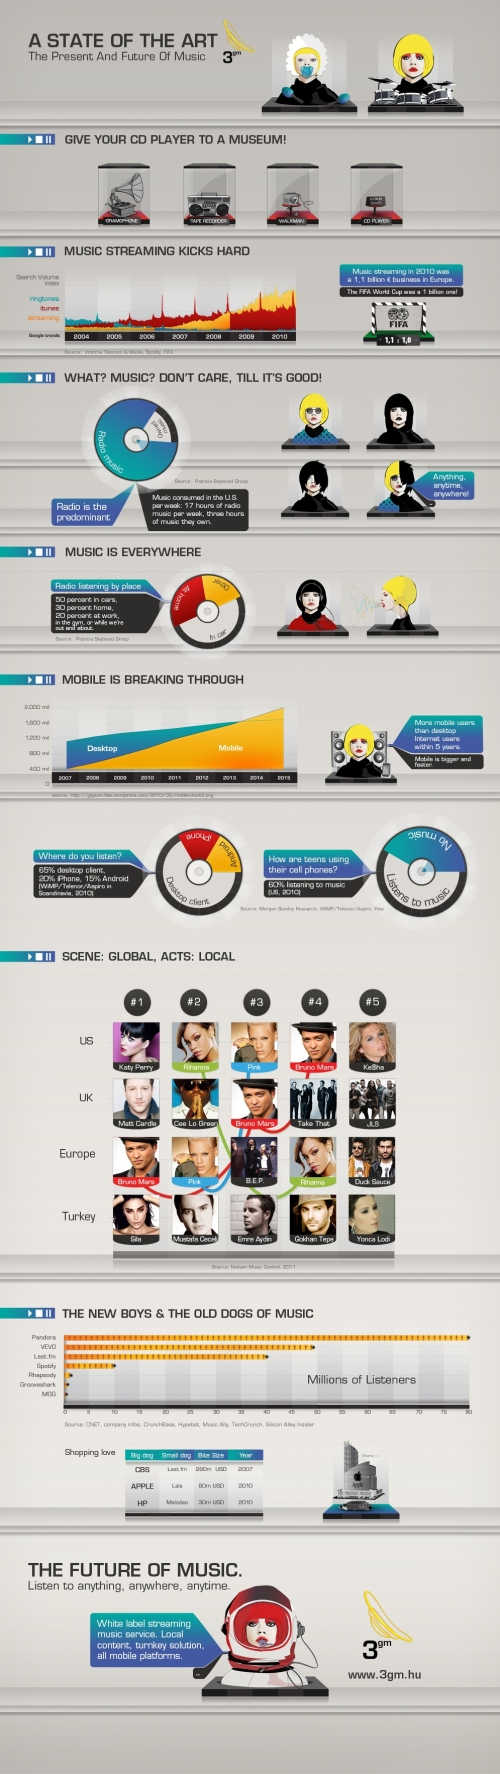 The Present and Future State of Music infographic